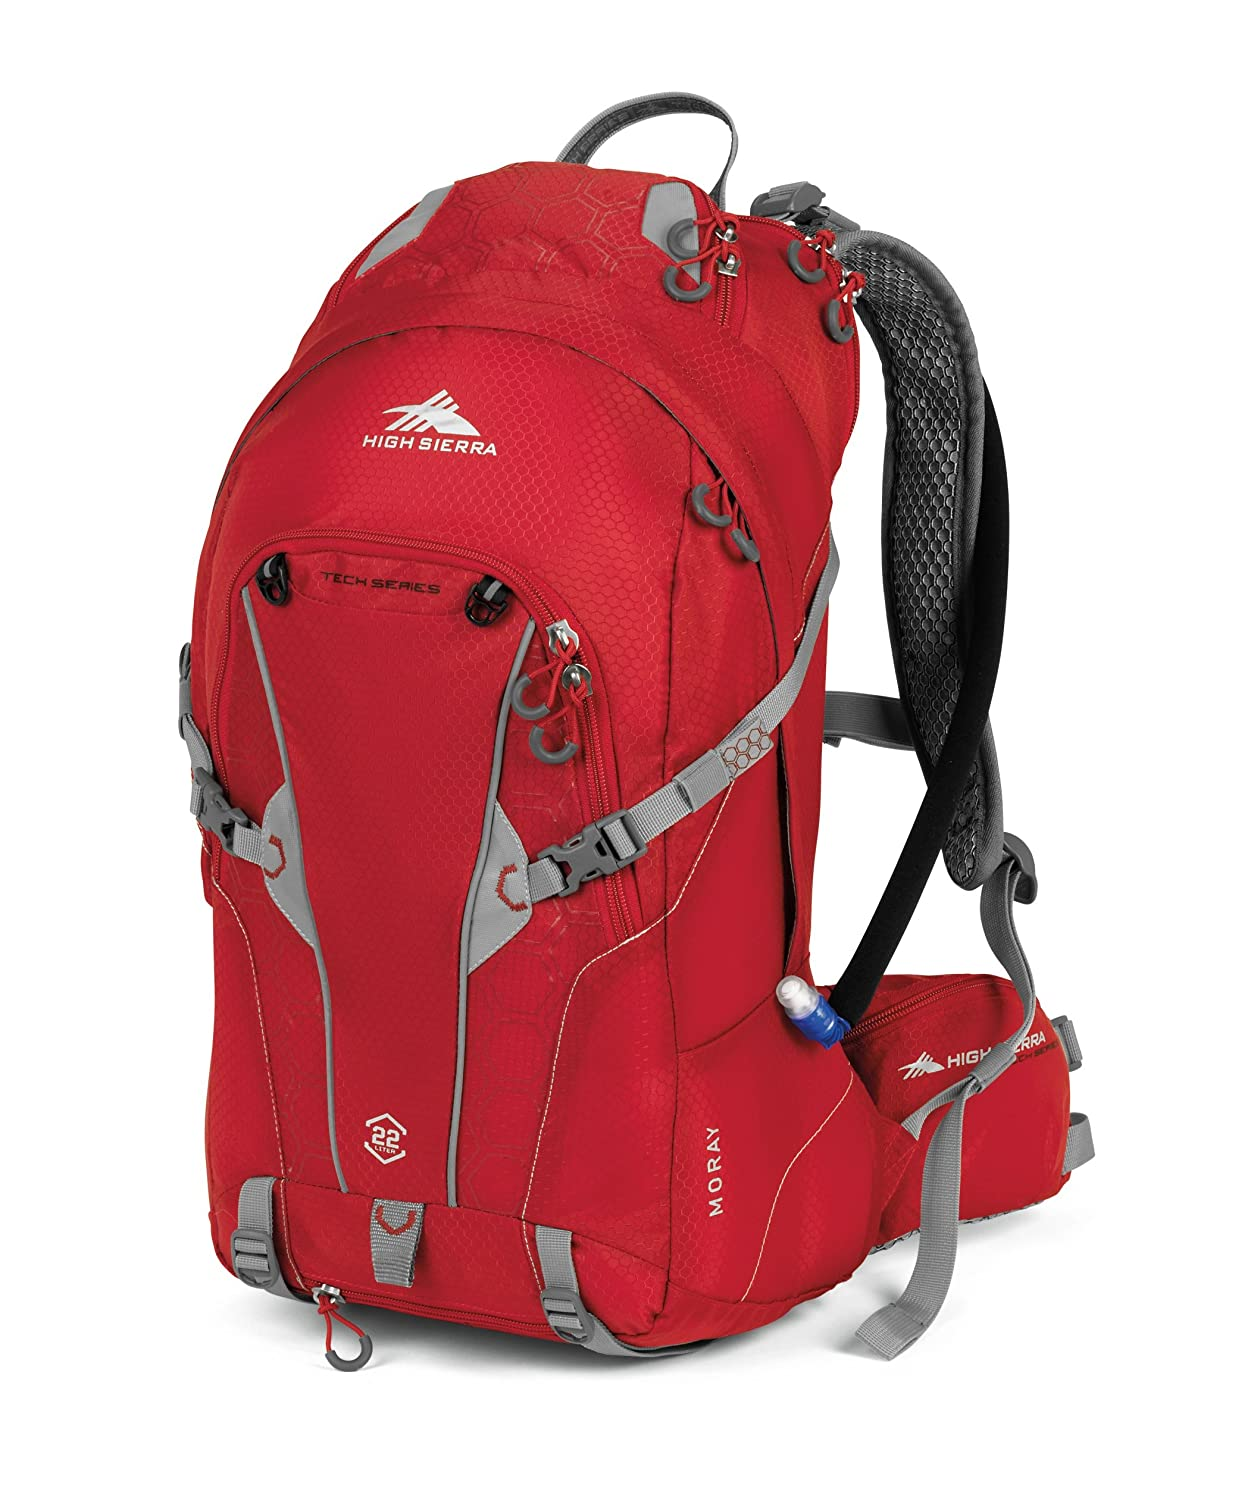 High Sierra Moray 22 Hydration Pack